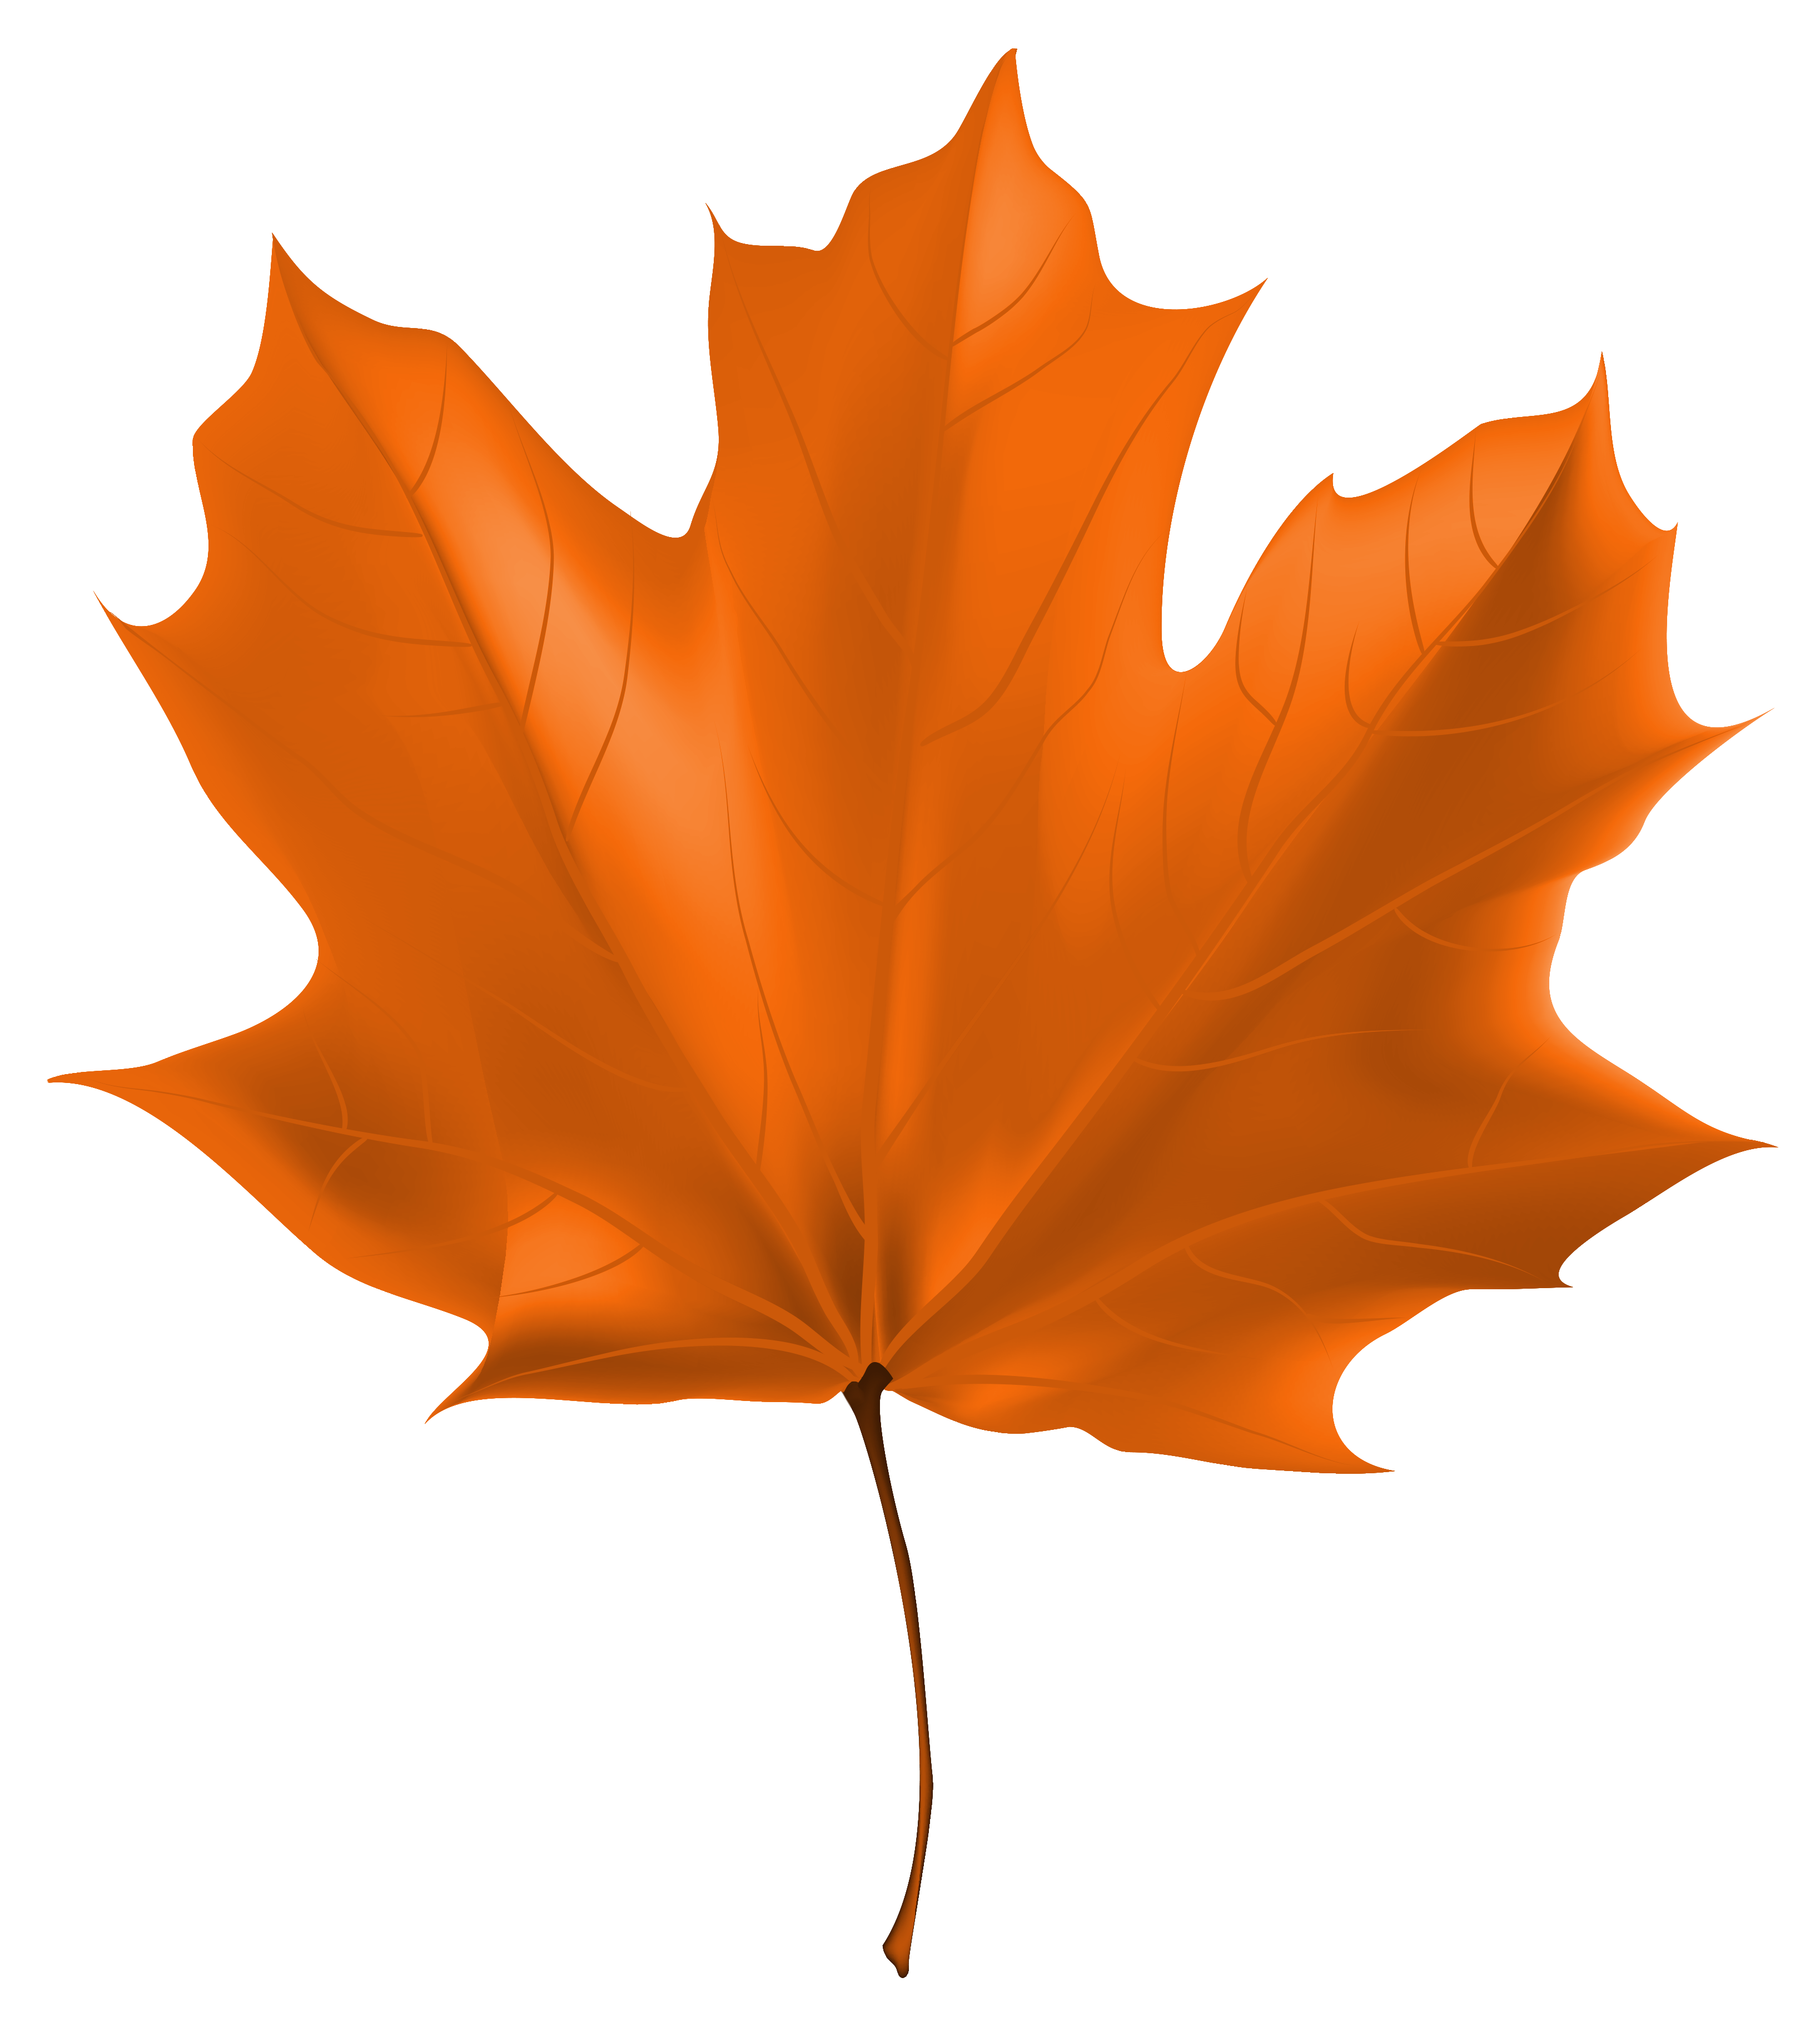 30+ Autumn leaf clipart png ideas in 2021